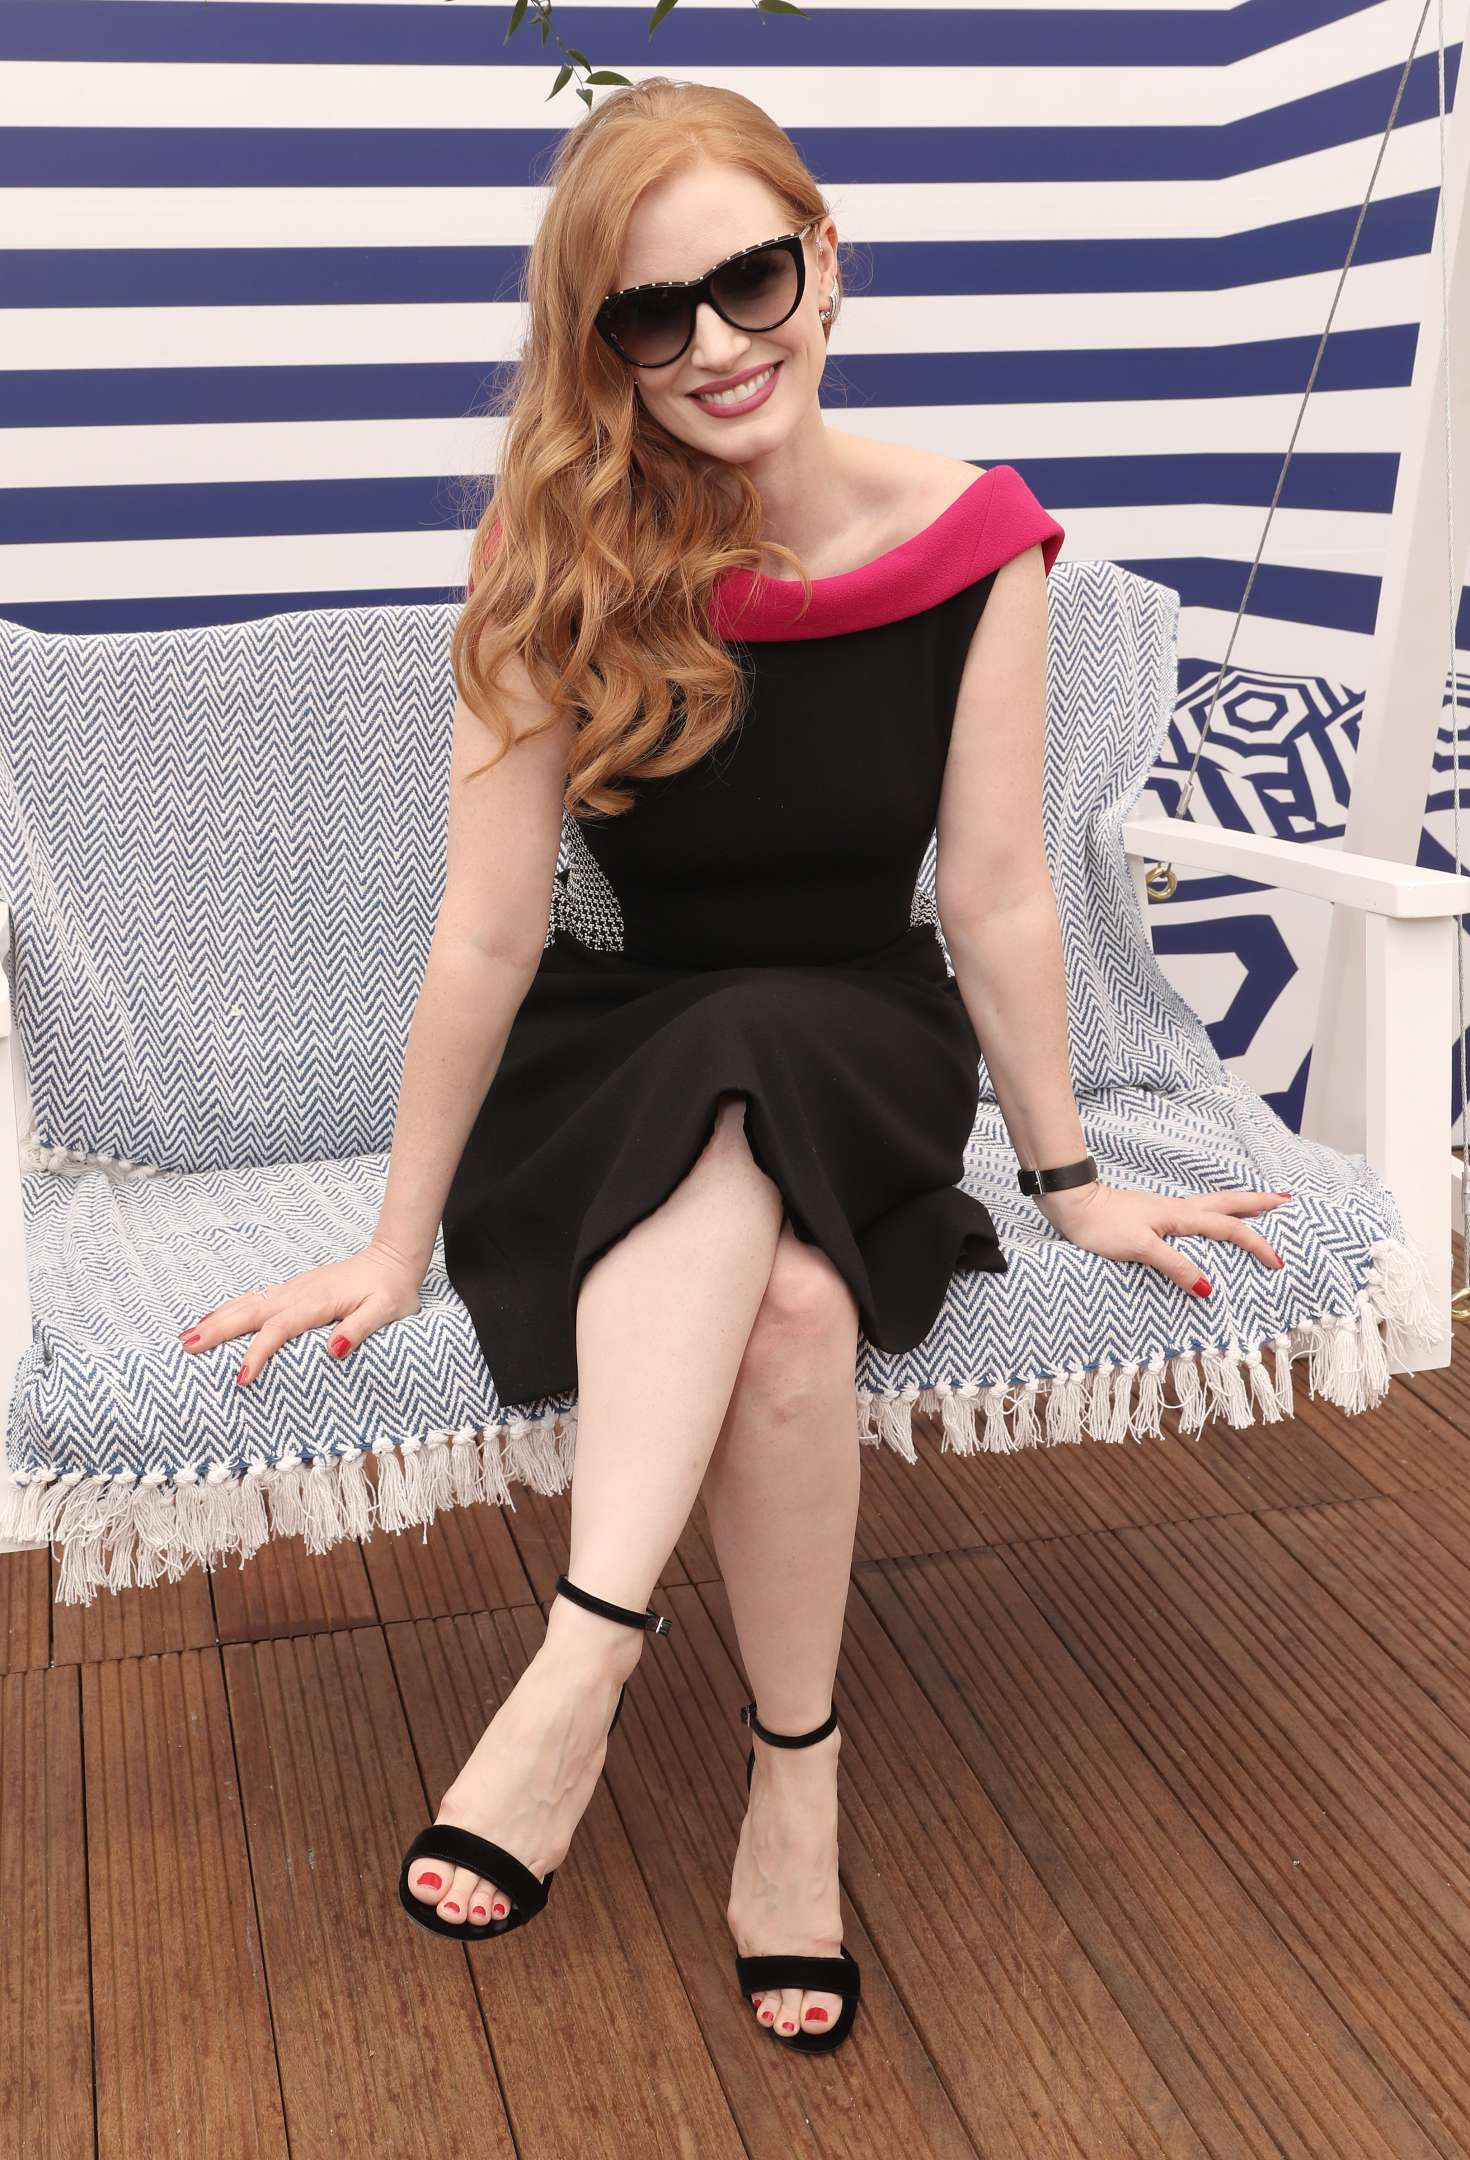 http://www.gotceleb.com/wp-content/uploads/photos/jessica-chastain/355-cocktail-party-with-directv-and-the-hollywood-reporter-at-2018-cannes-film-festival/Jessica-Chastain:-355-Cocktail-Party-with-DIRECTV-and-The-Hollywood-Reporter--02.jpg